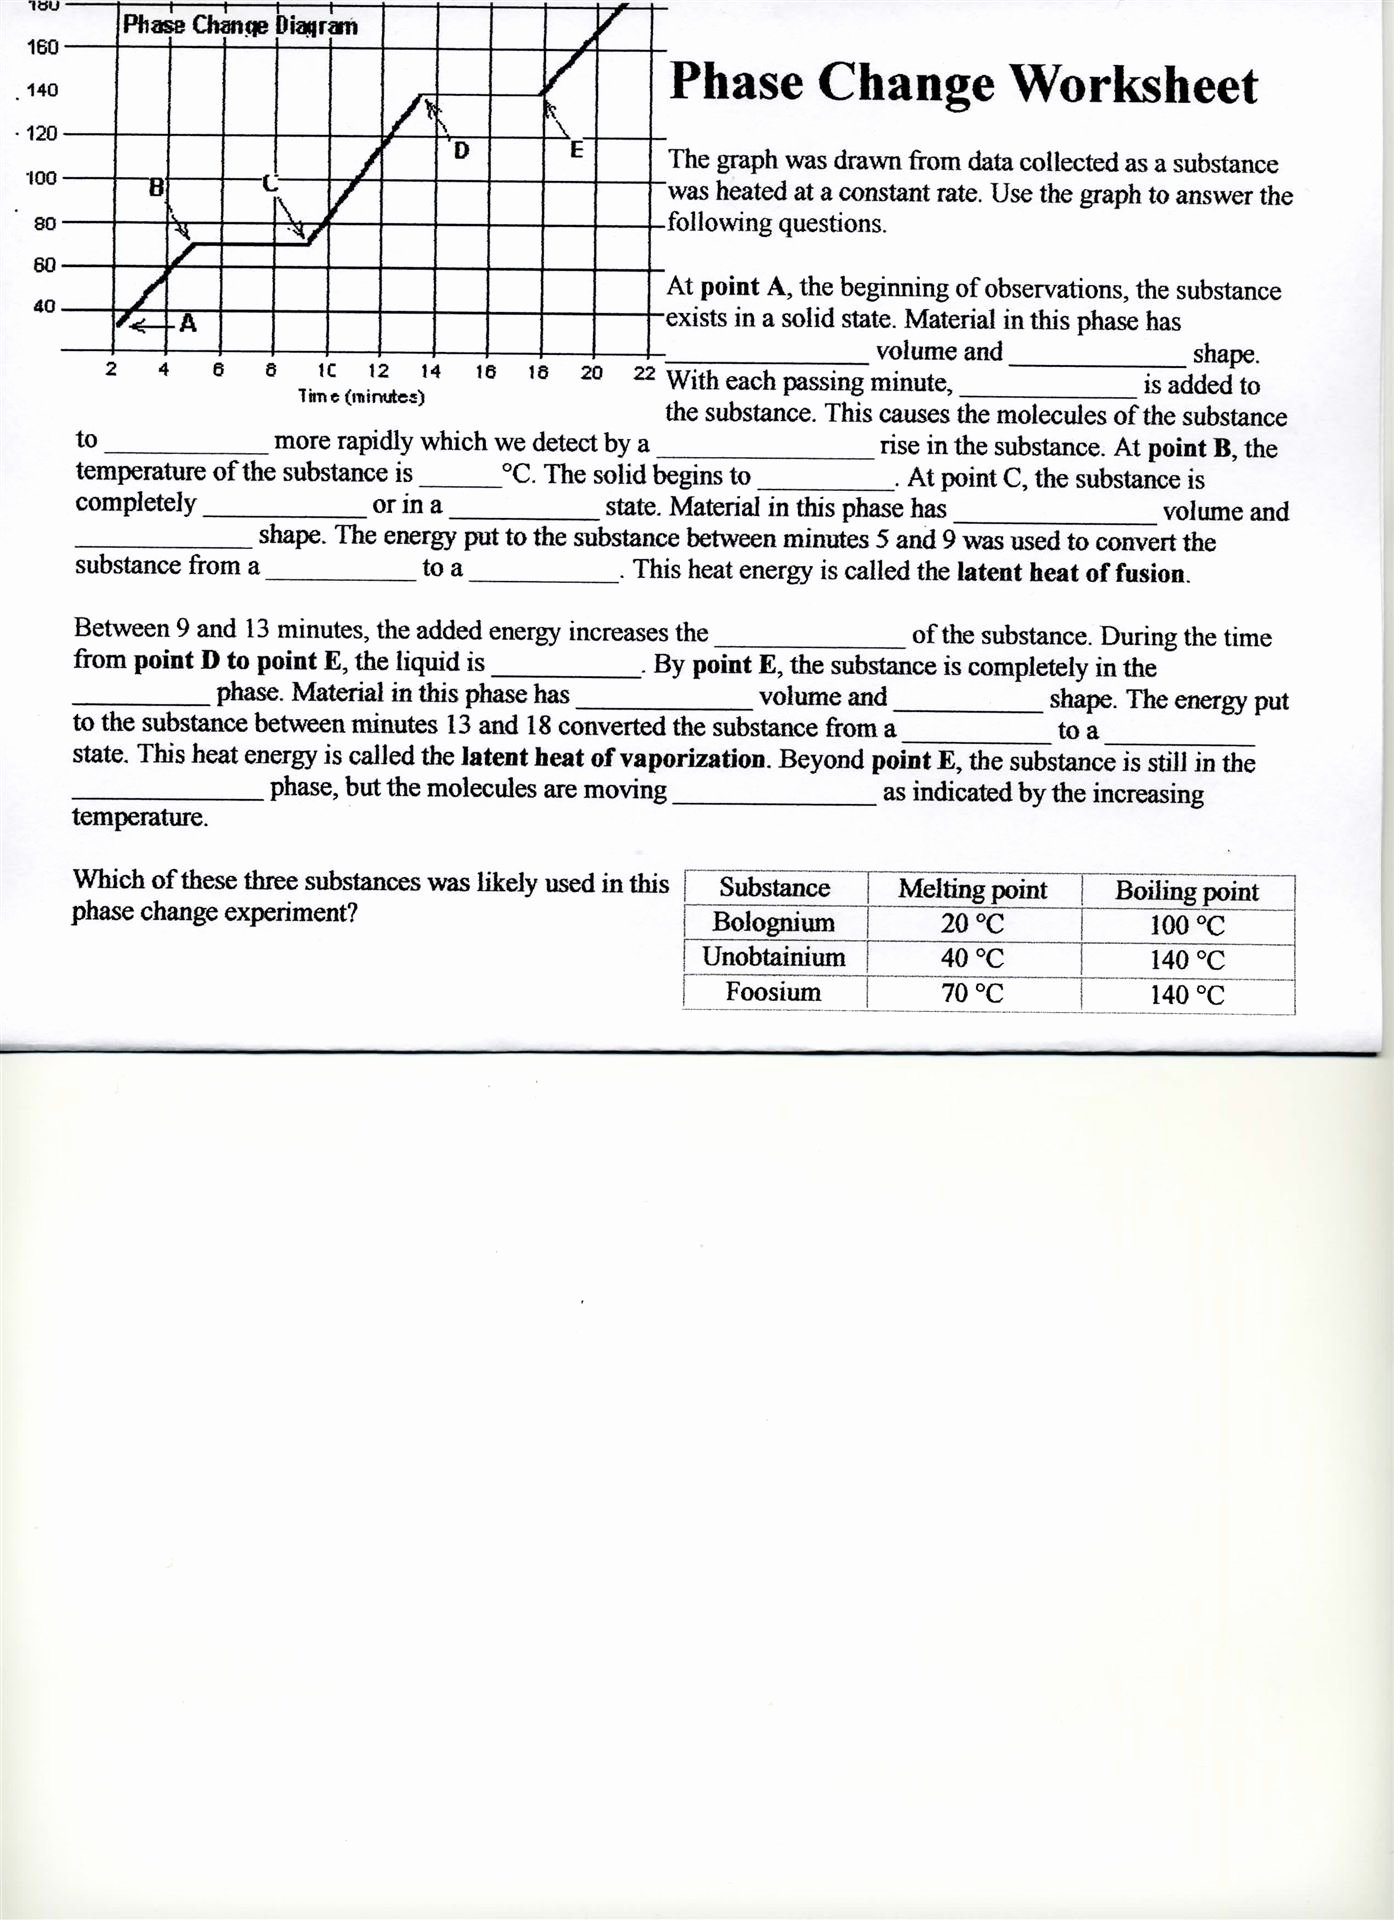 Phase Diagram Worksheet Answers New Worksheet Phase Change Worksheet Answers Grass Fedjp